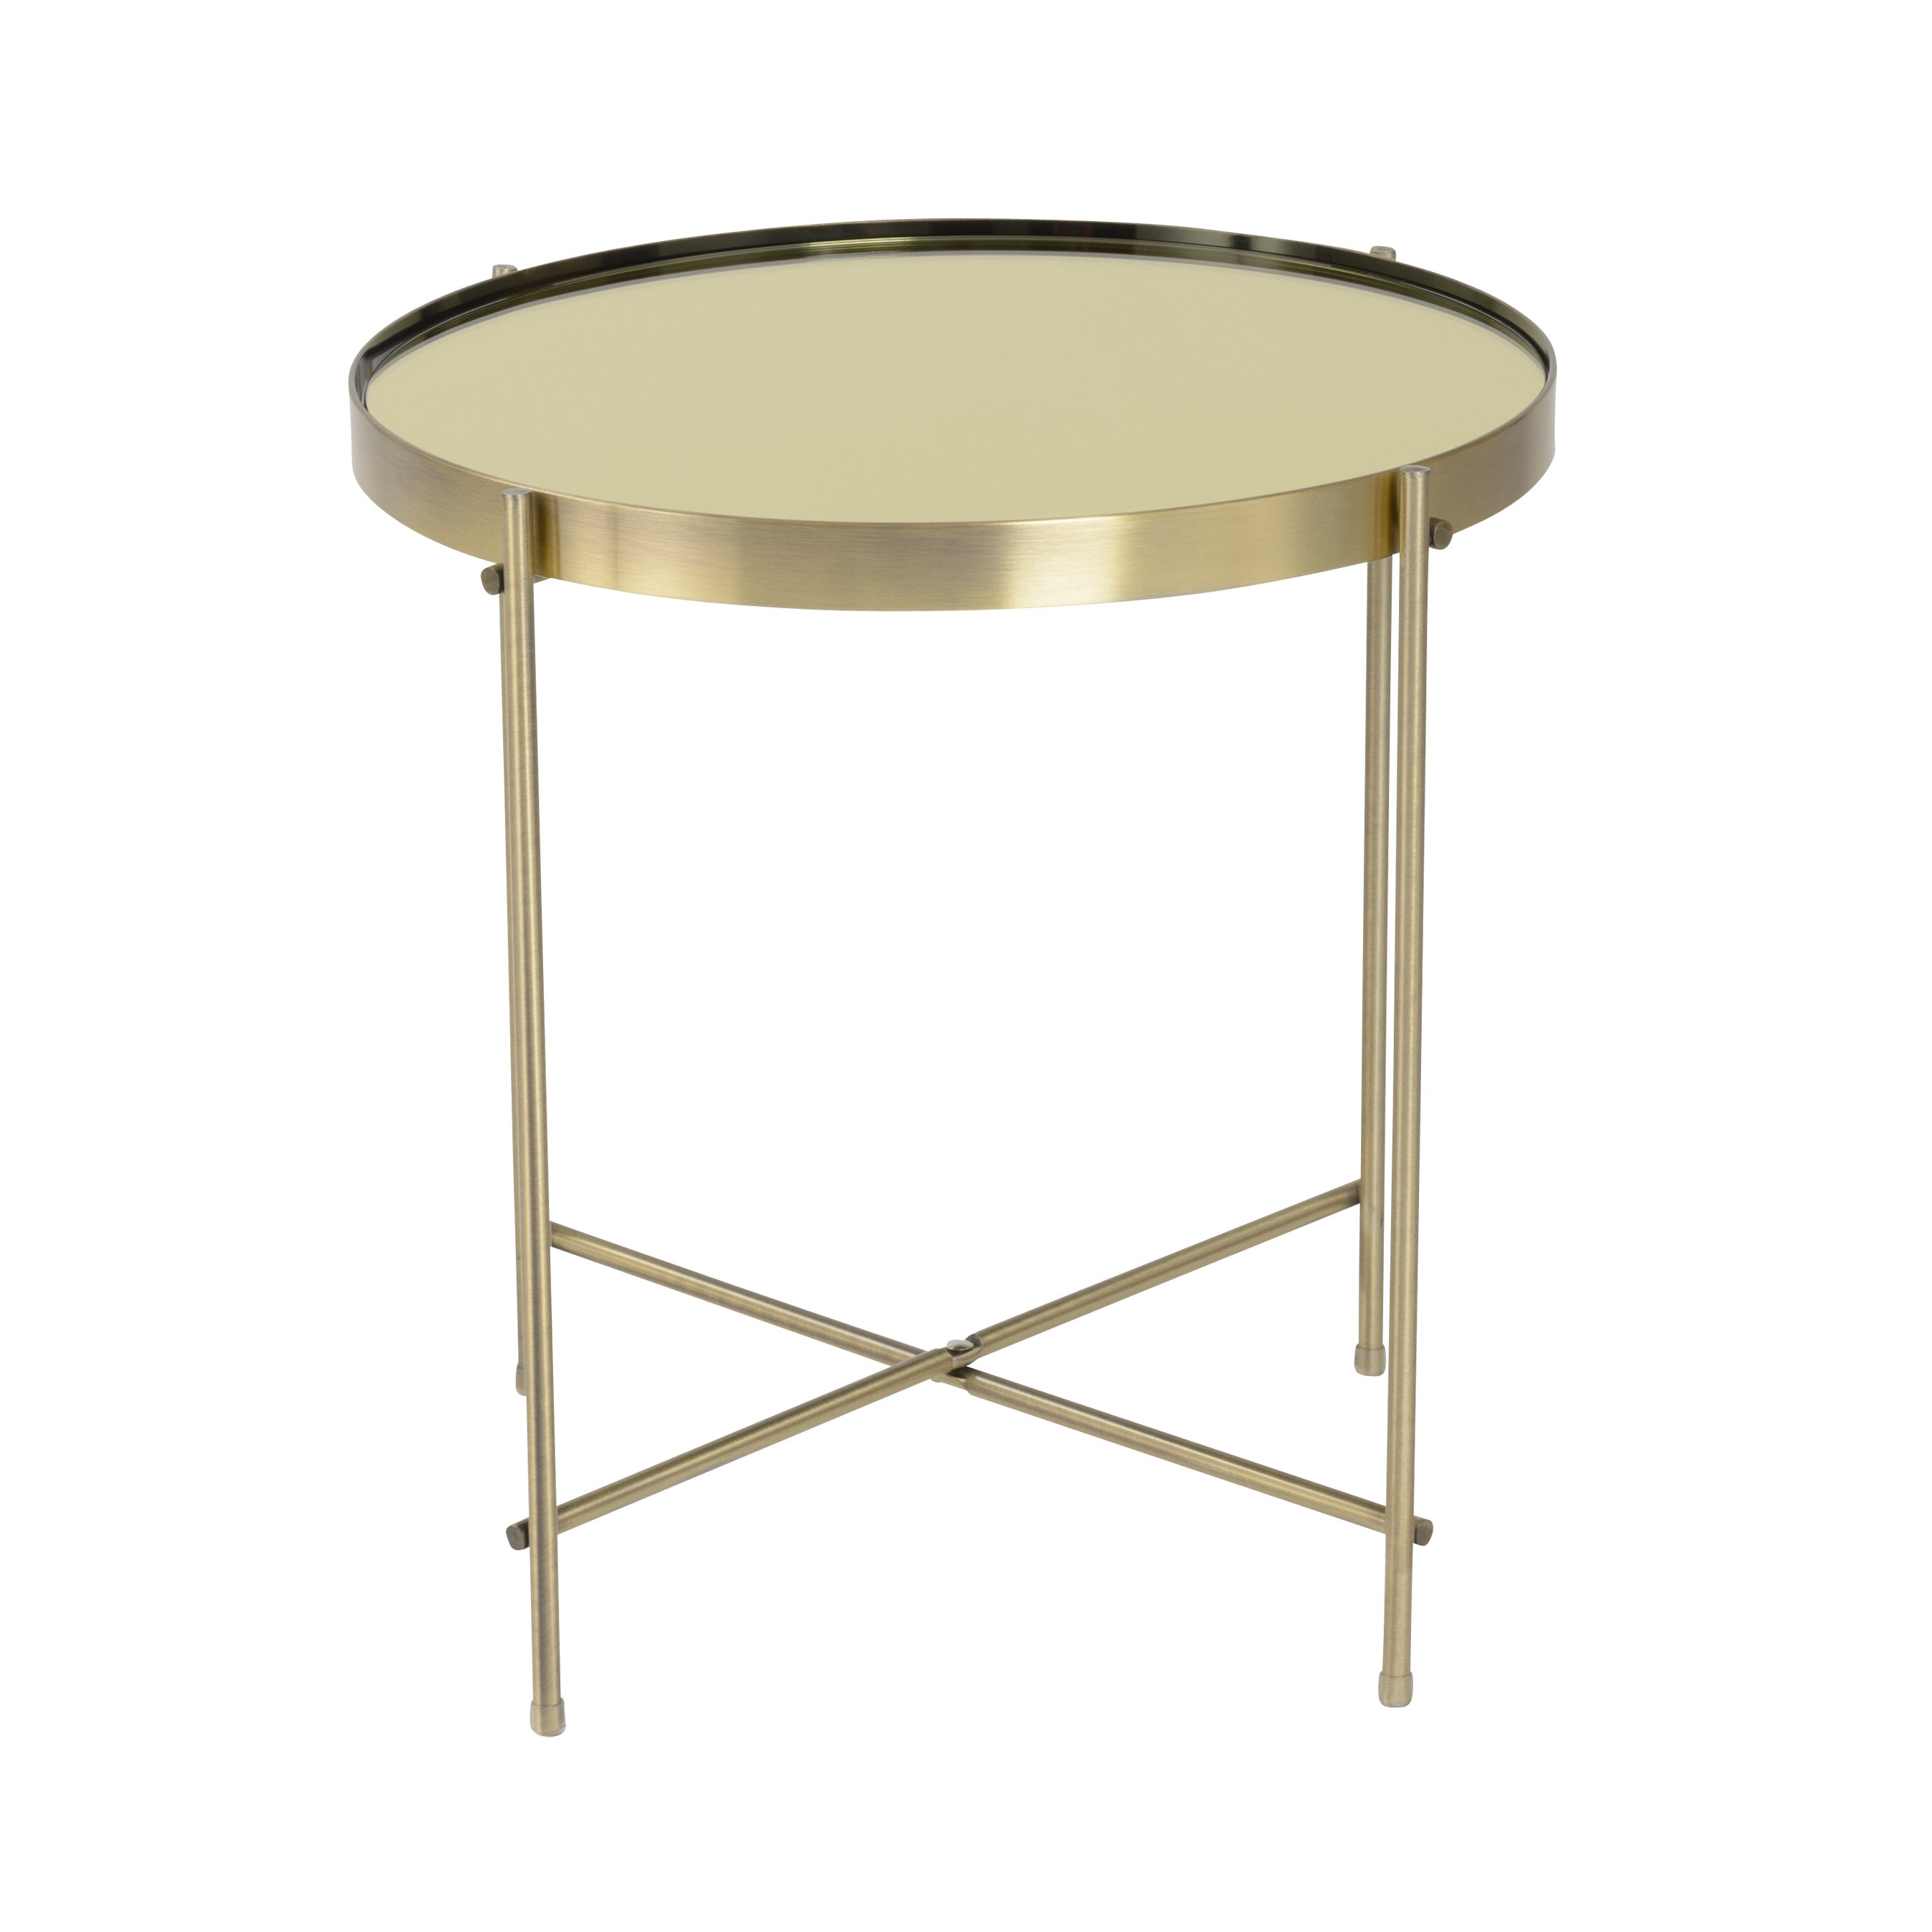 Shop Euro Style Trinity Round Mirrortop Brushedbrass Side Table - Brushed brass side table